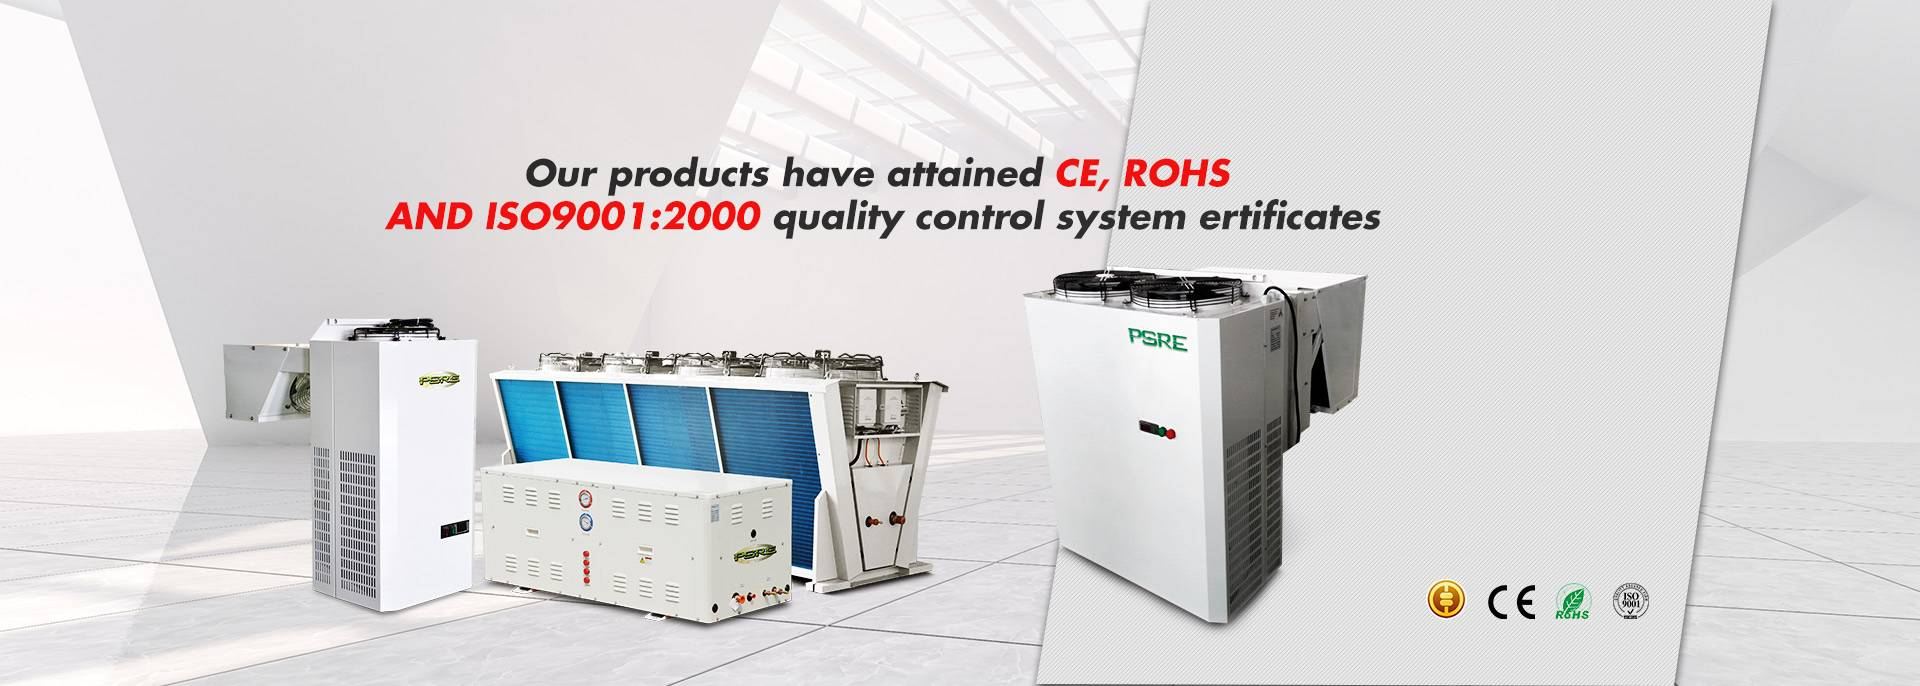 our products have attained CE, RoHS  and ISO9001:2000 quality control system ertificates